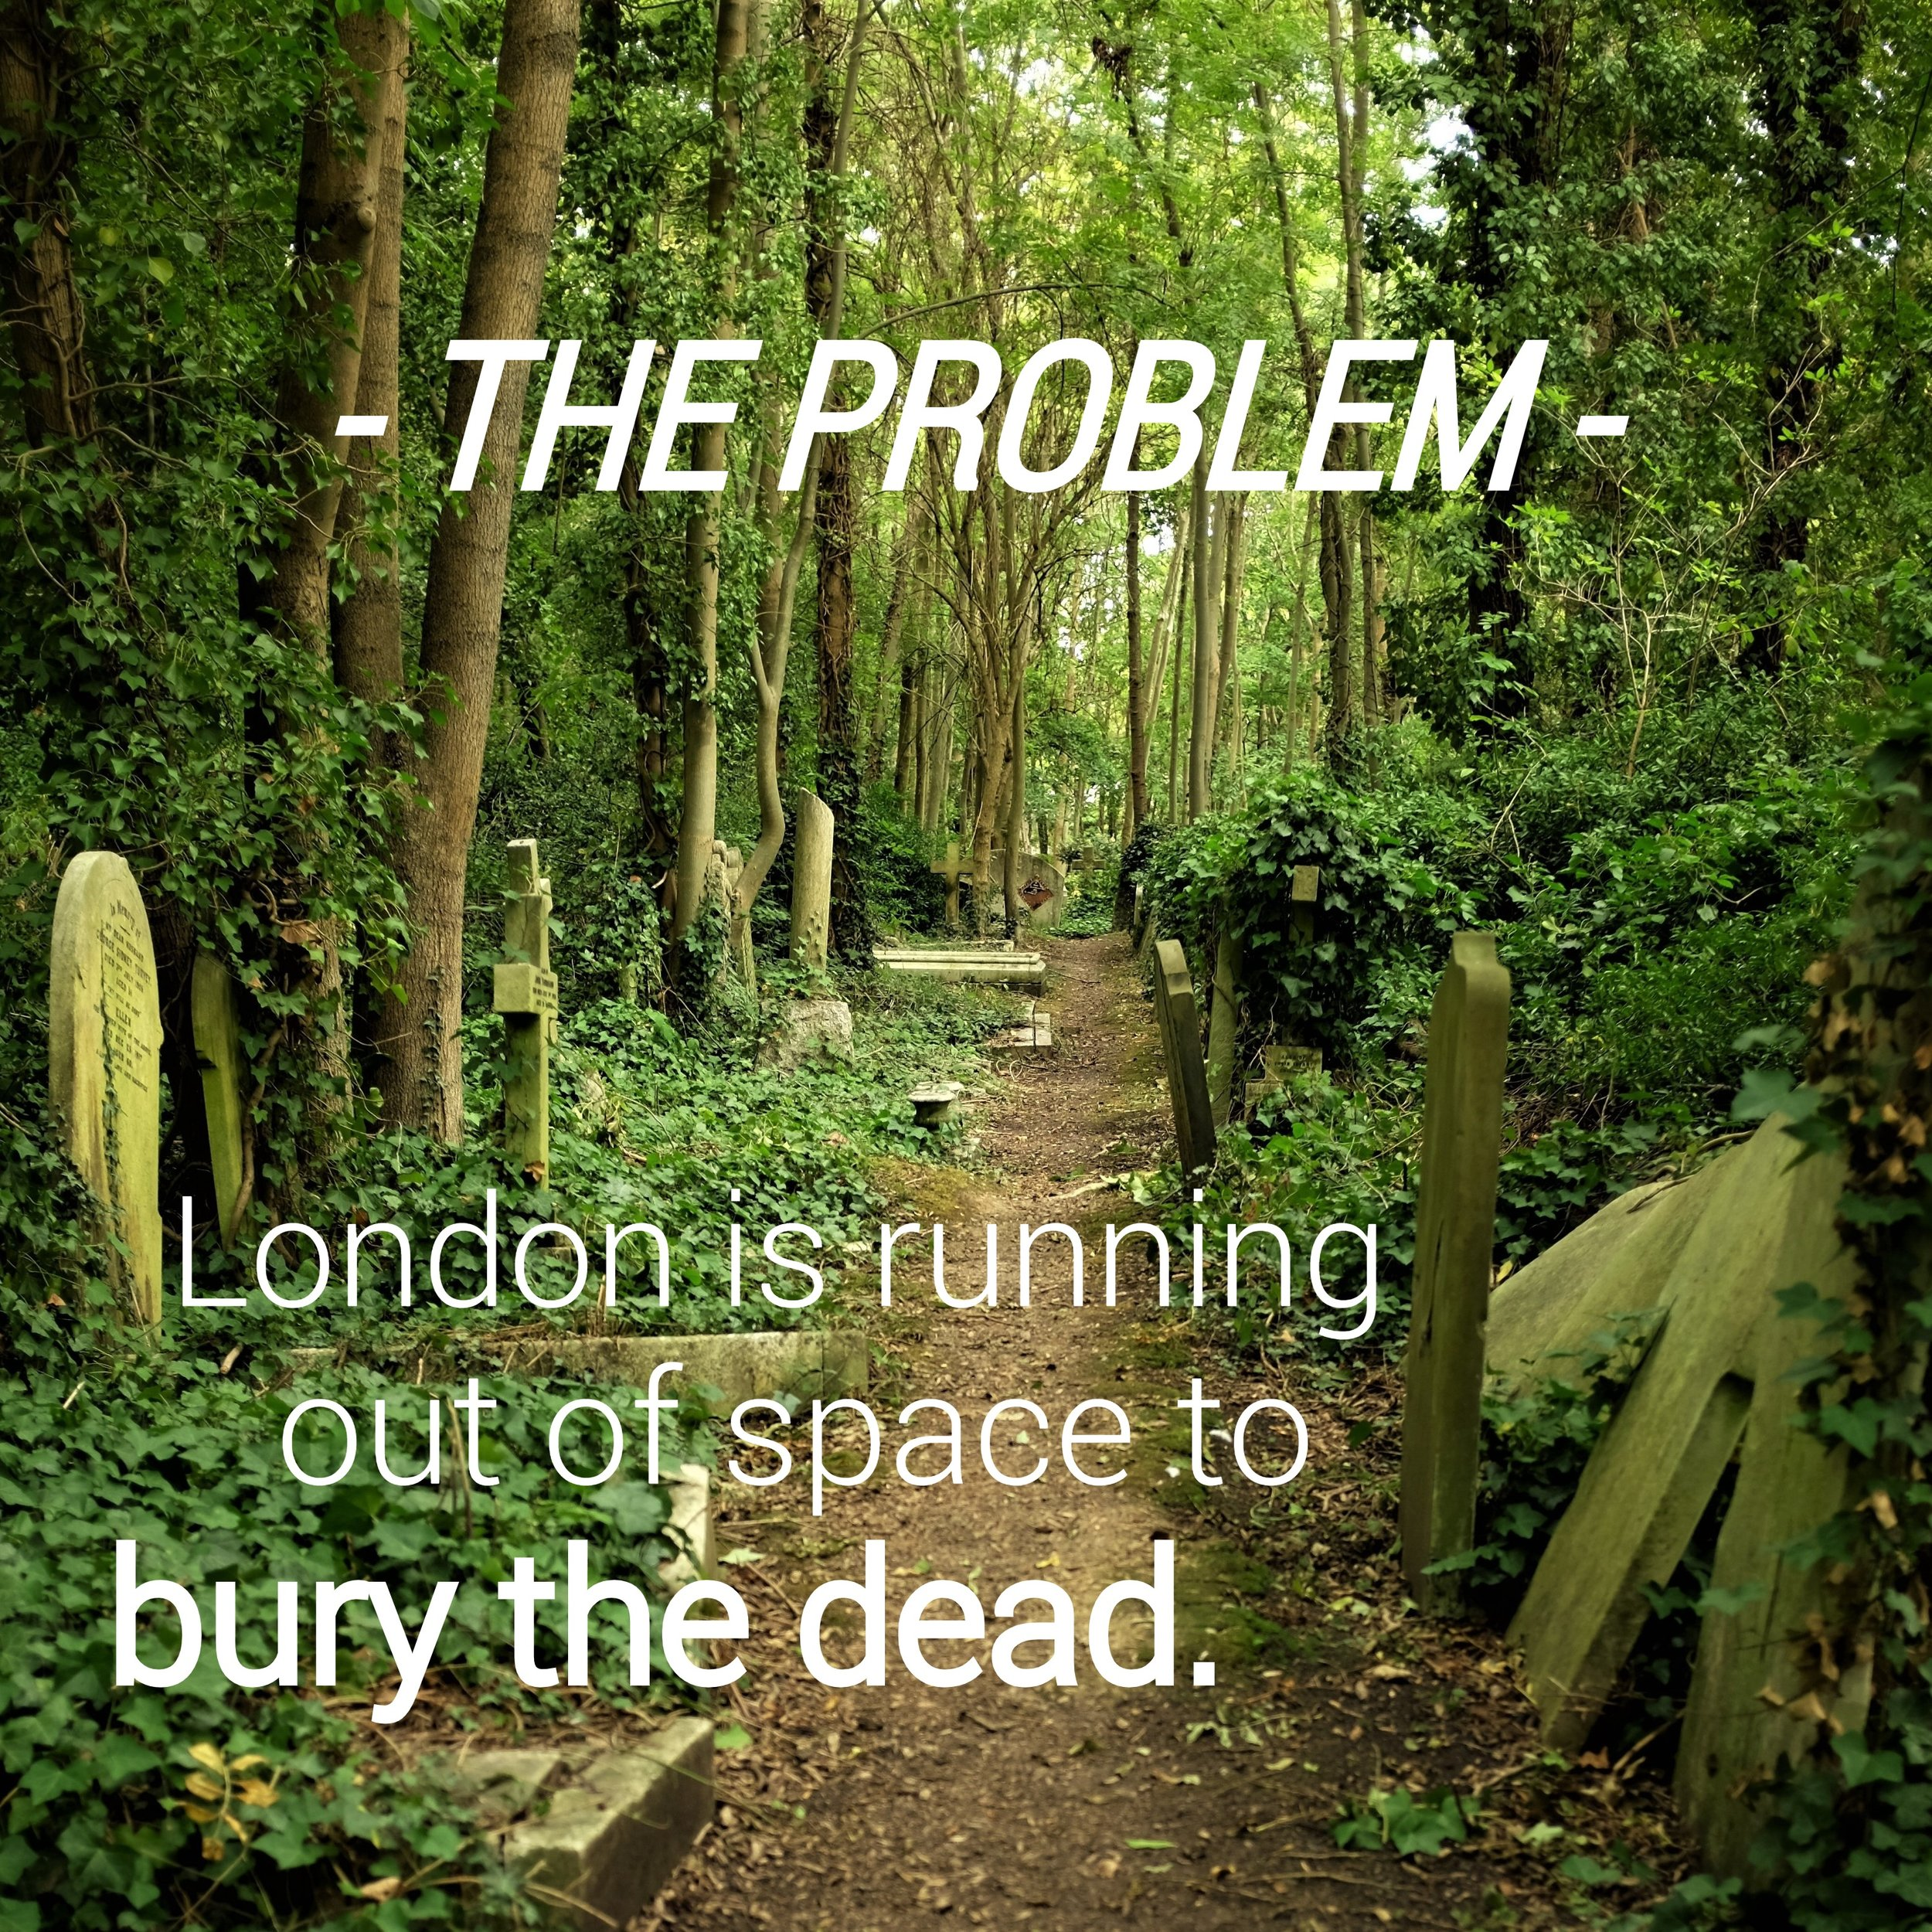 London Cemetery The Problem Katie Thornton Death in the Digital Age Fulbright National Geographic Storytelling Podcast